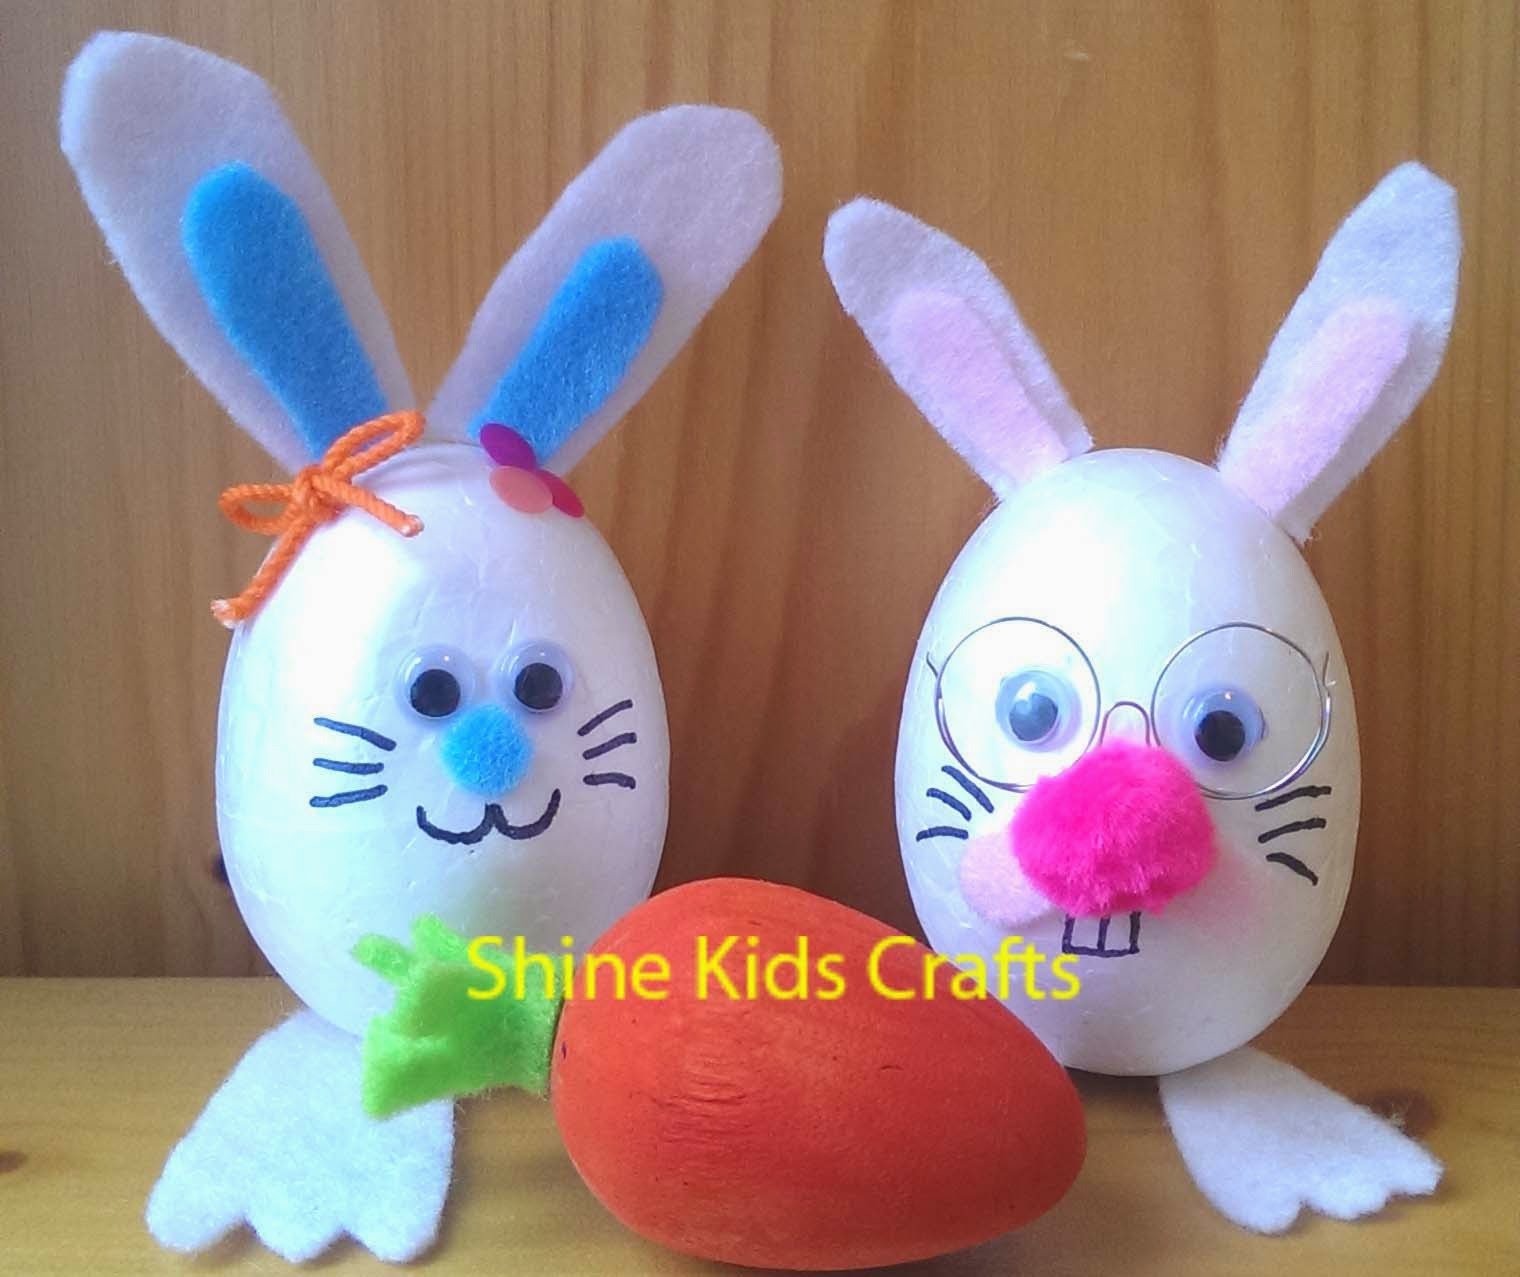 shine kids crafts 11 special materials to make cute 3 d easter bunny